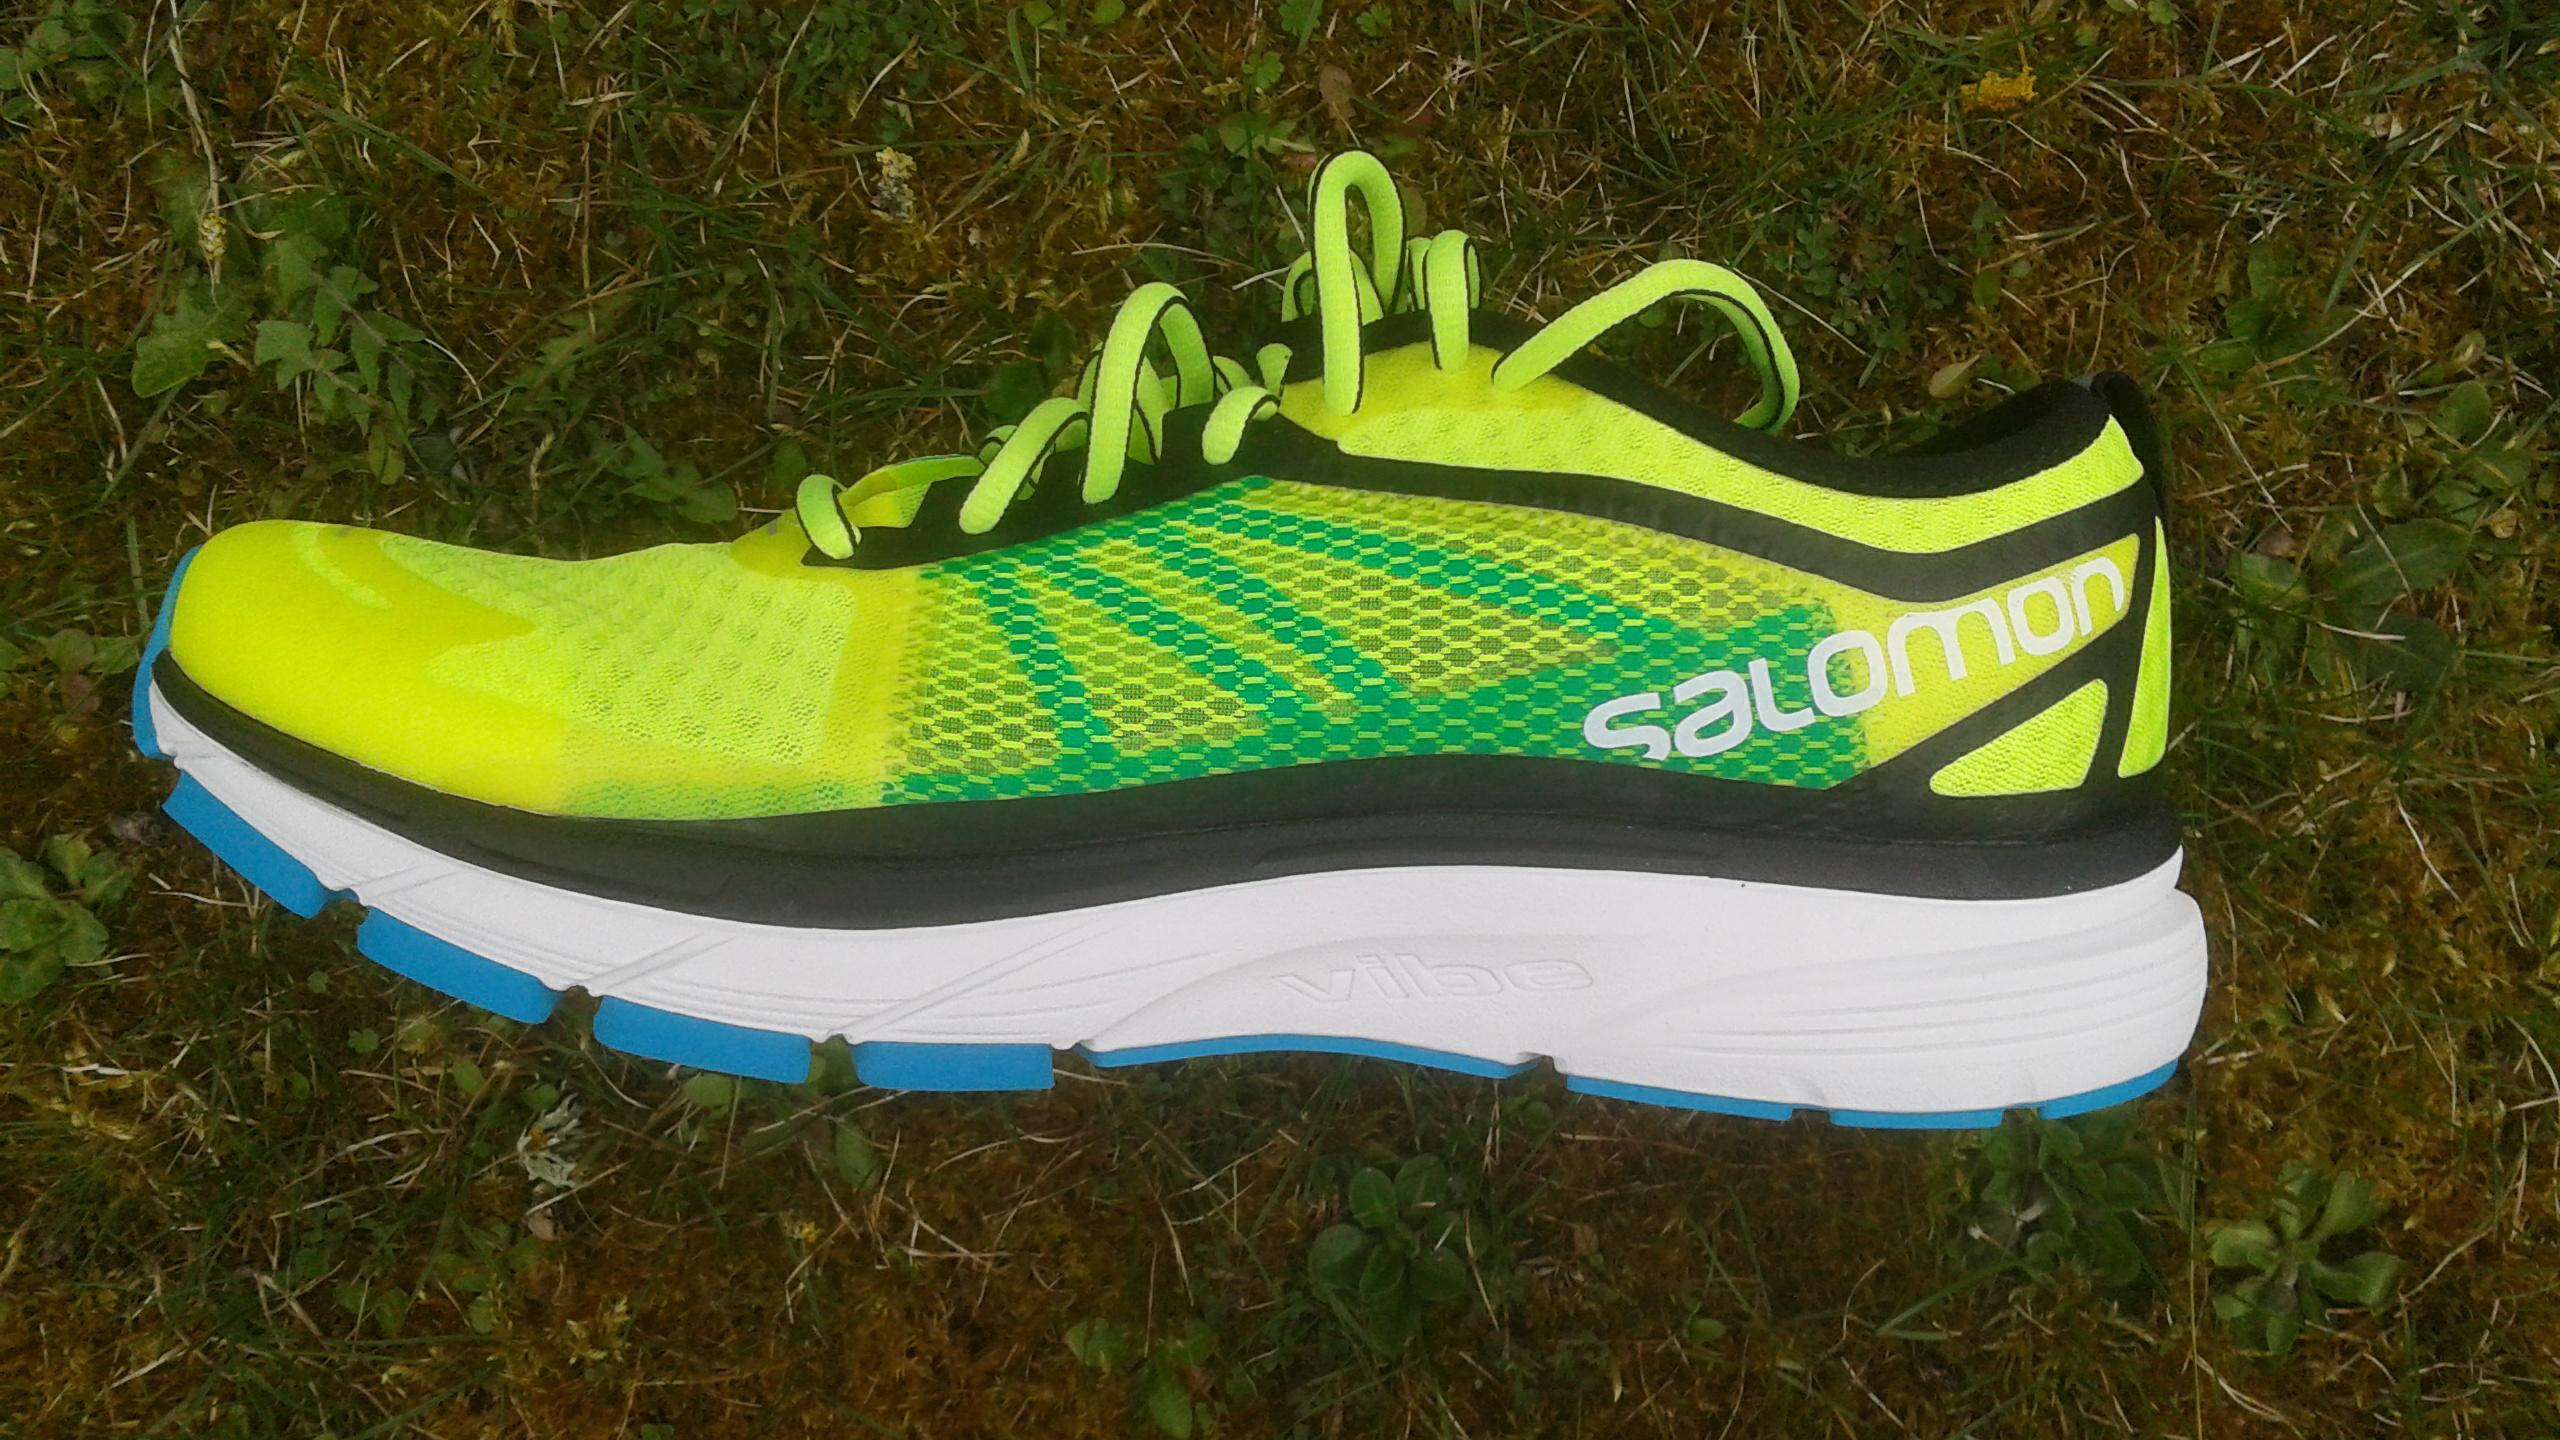 31932532 627648687579025 3546716768208683008 n - CHAUSSURE RUNNING SALOMON SONIC RA (SAFETY YELLOW/BK/BLUBRD)